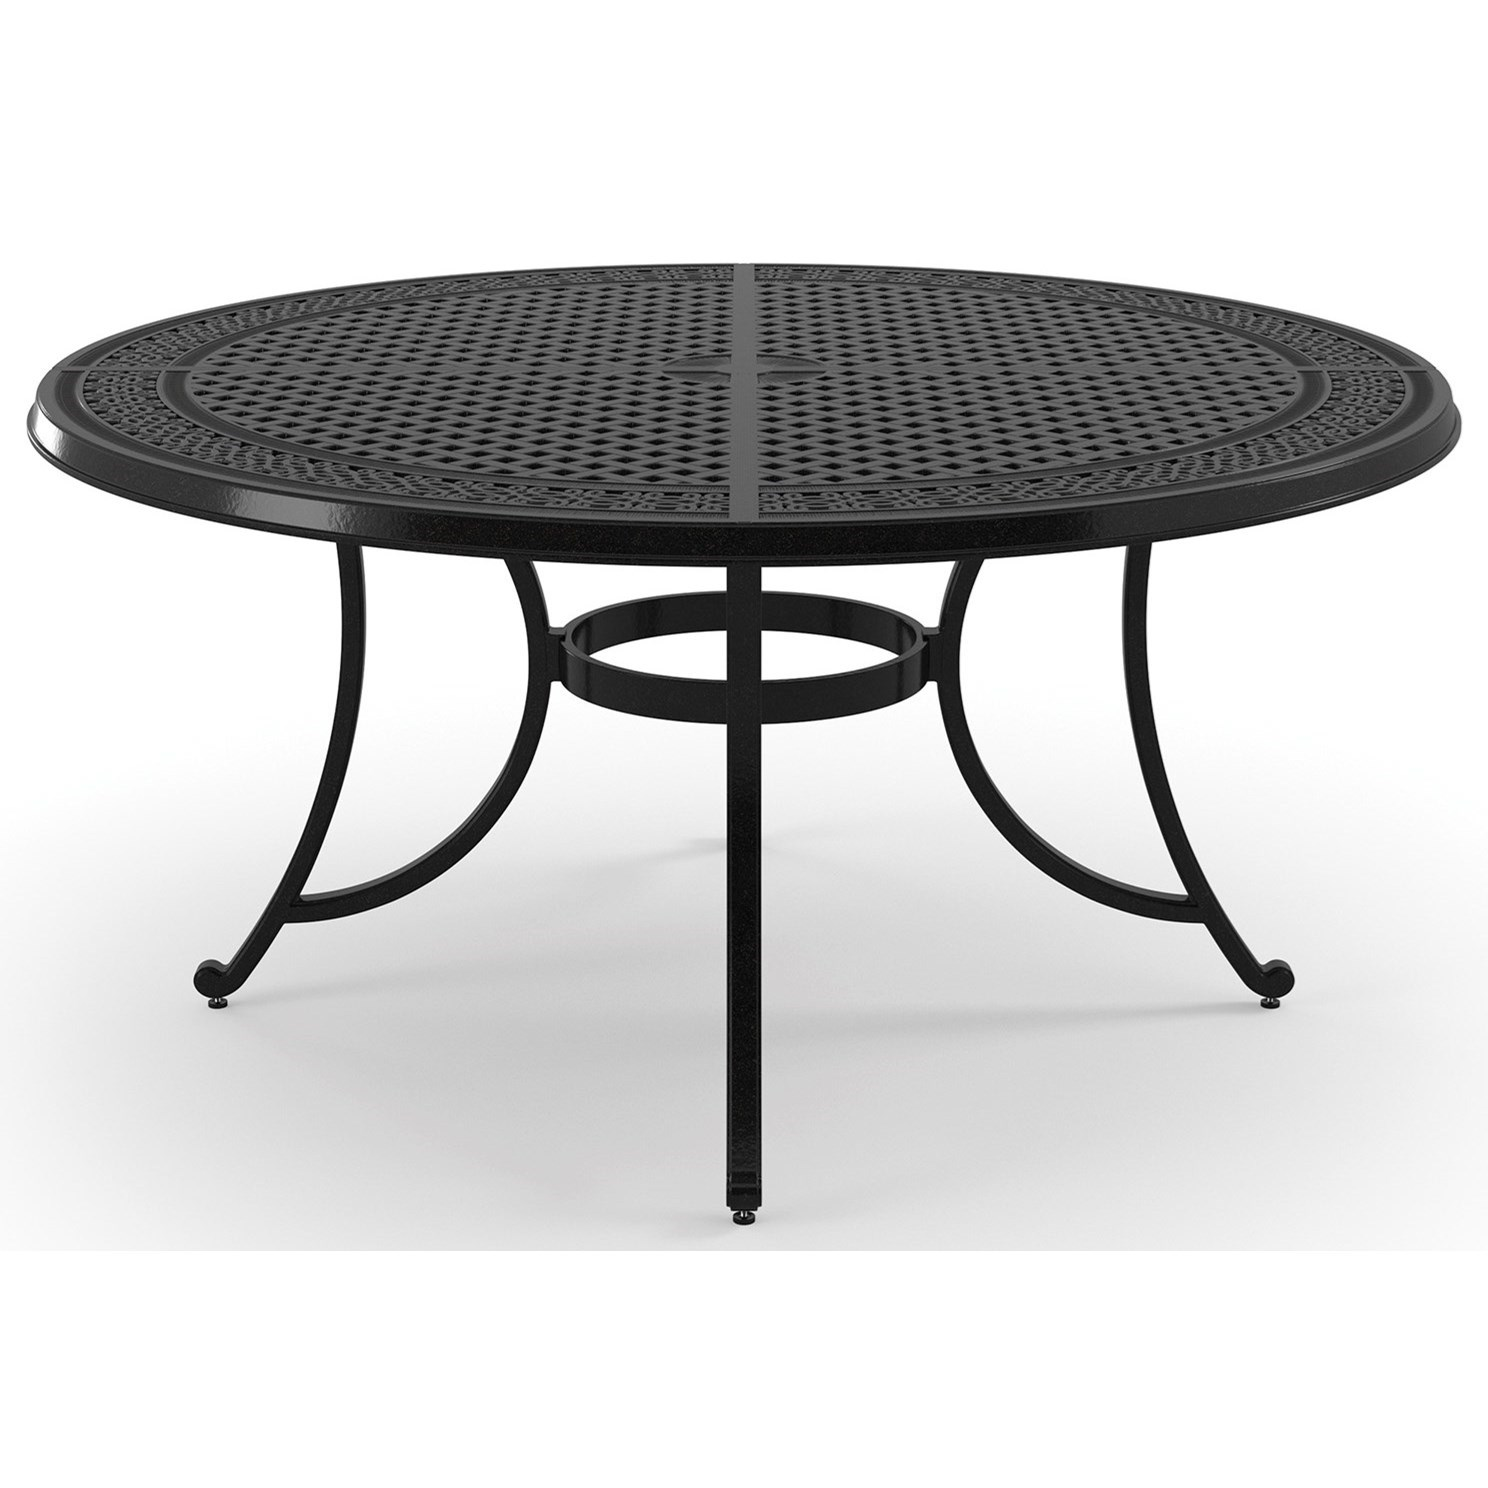 Burnella Large Round Dining Table w/ Umbrella Hole by Signature Design by Ashley at Lapeer Furniture & Mattress Center